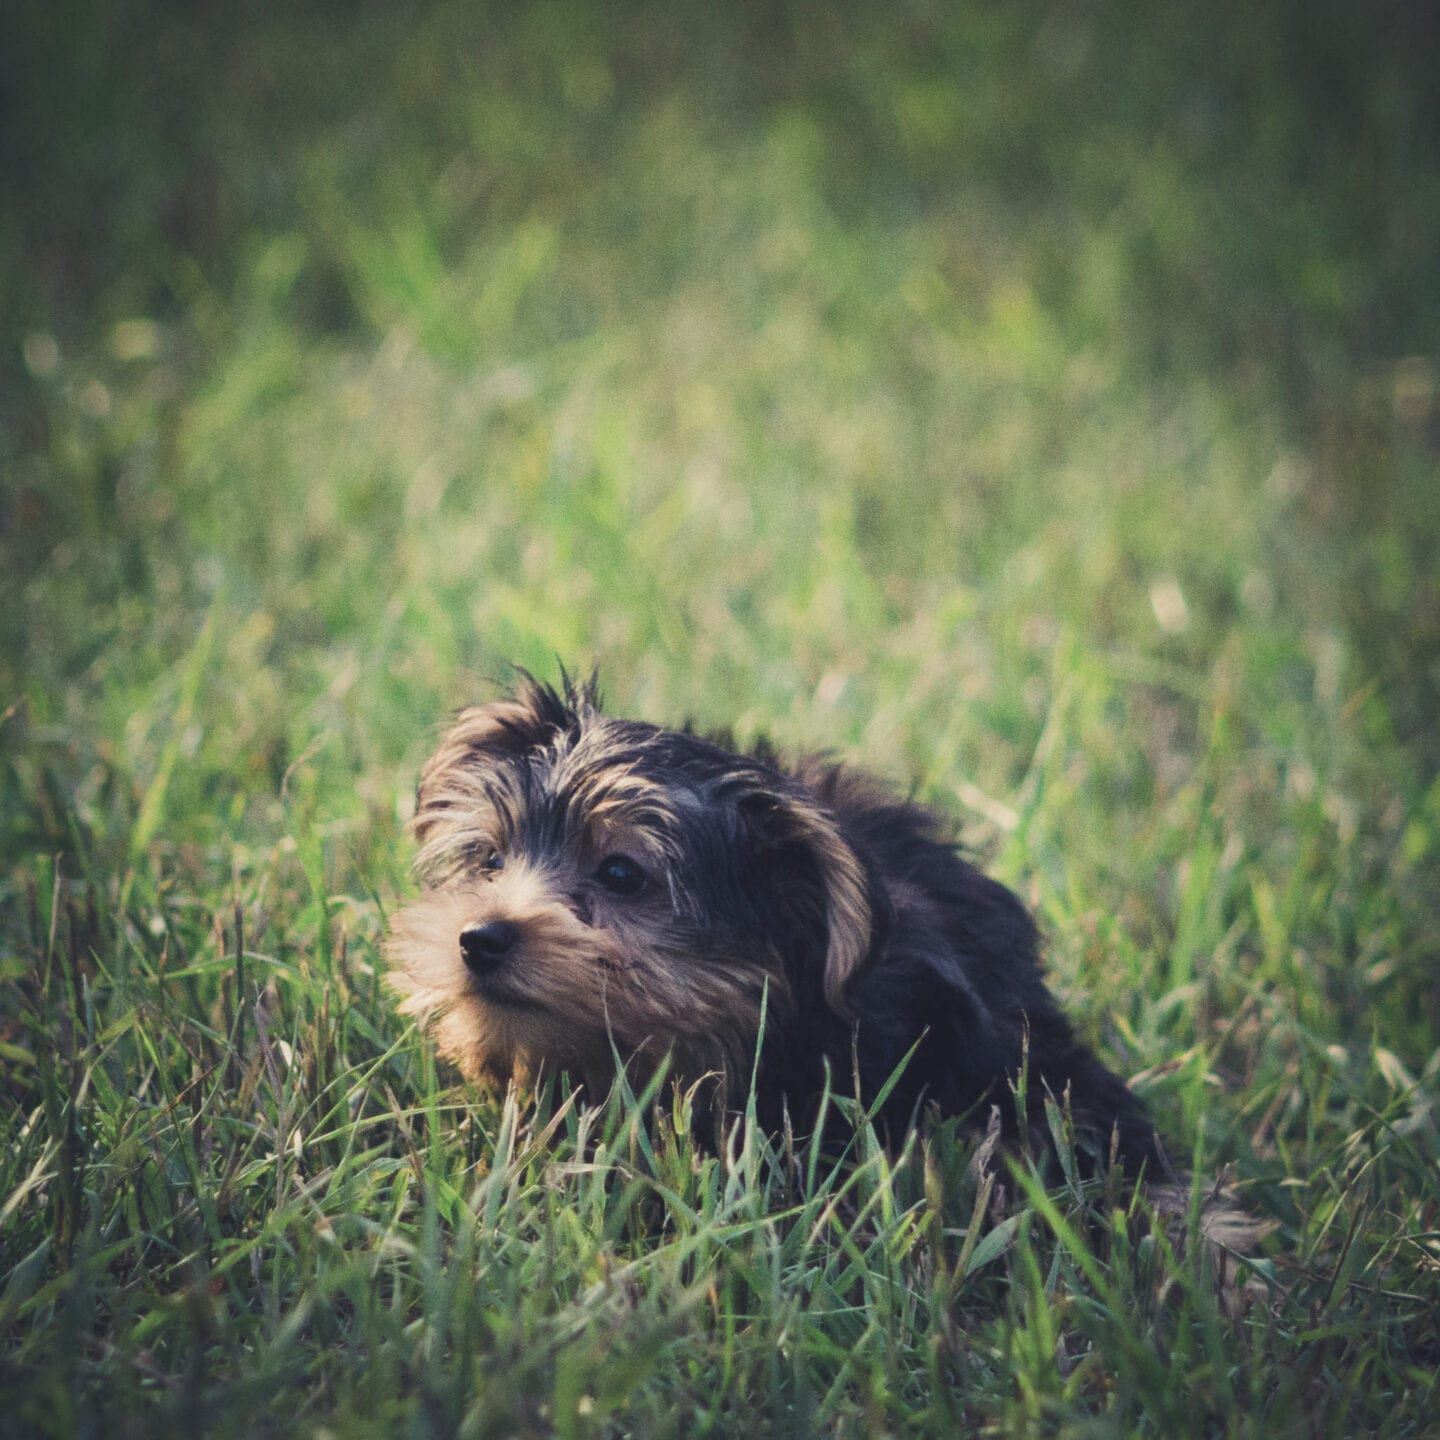 This Yorkie has never landed his feet on grass and is definitely confused!